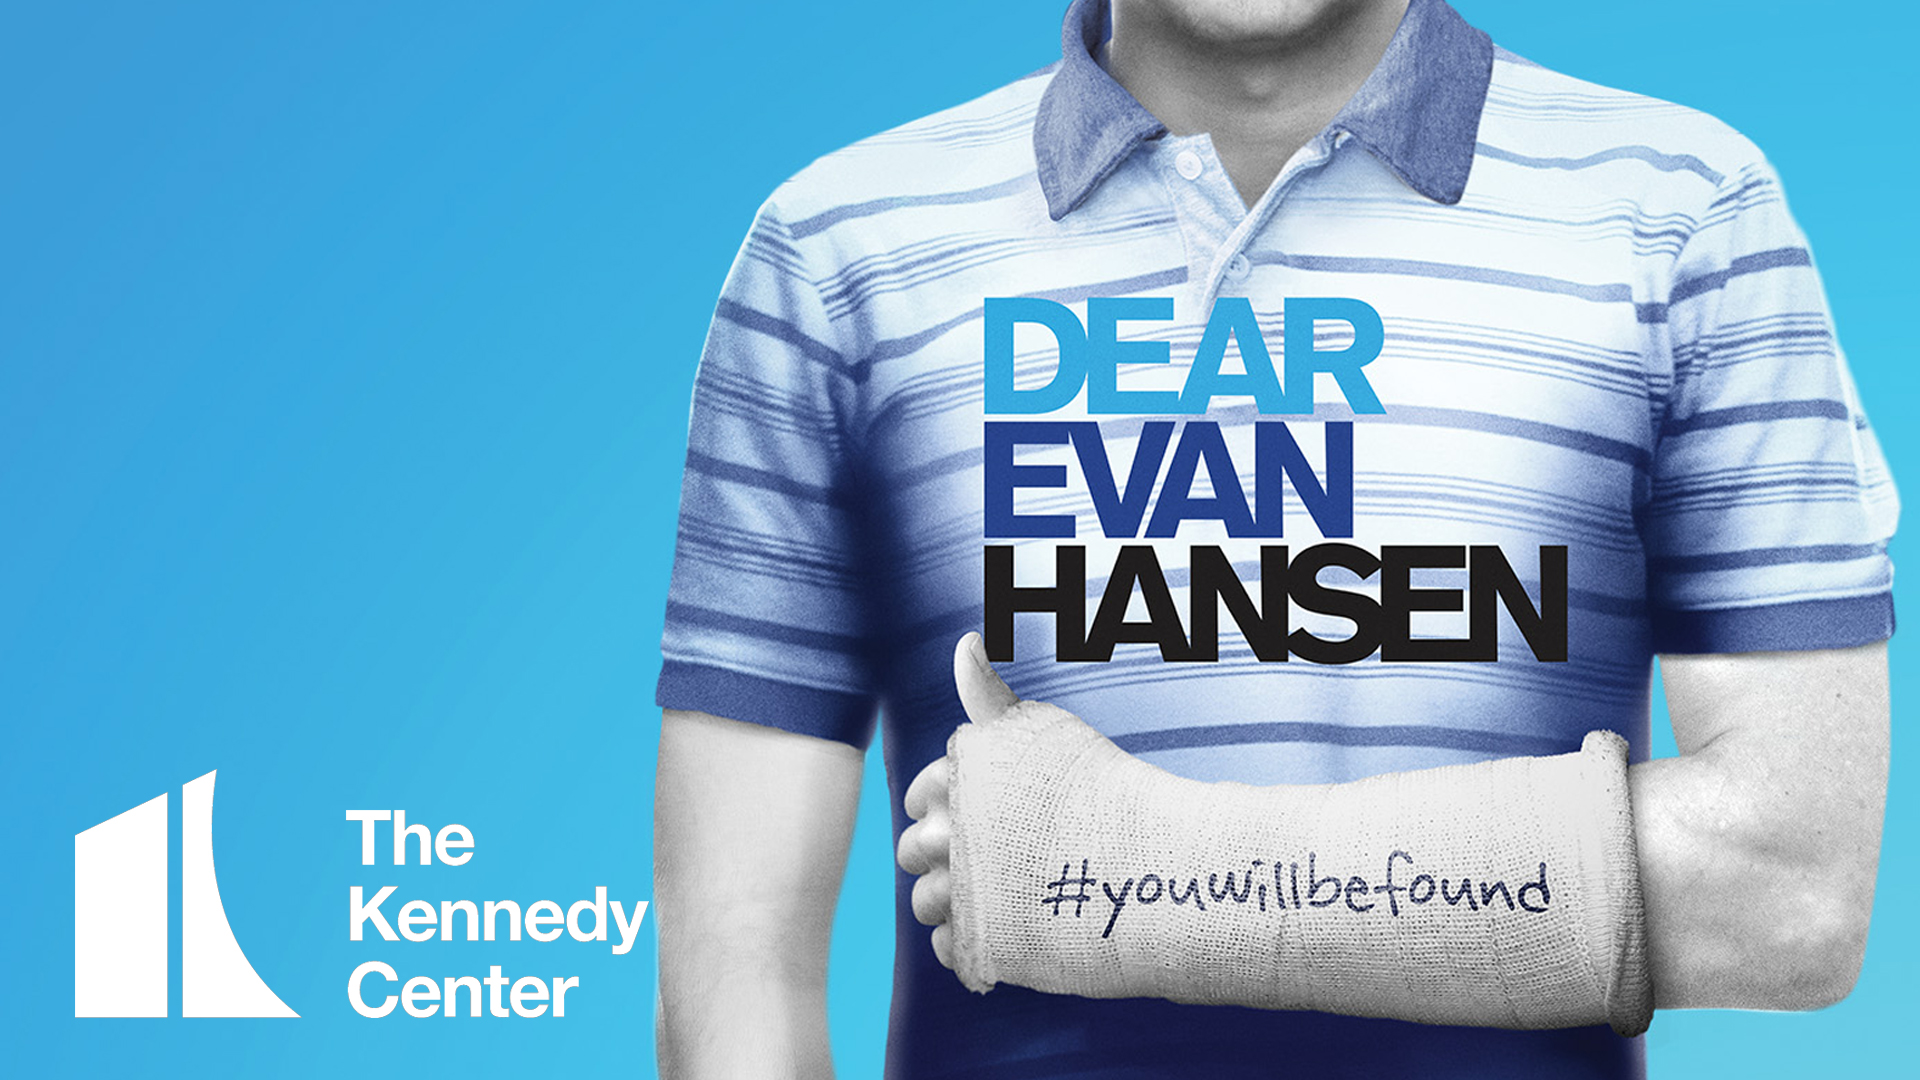 Dear Evan Hansen Trailer | The Kennedy Center